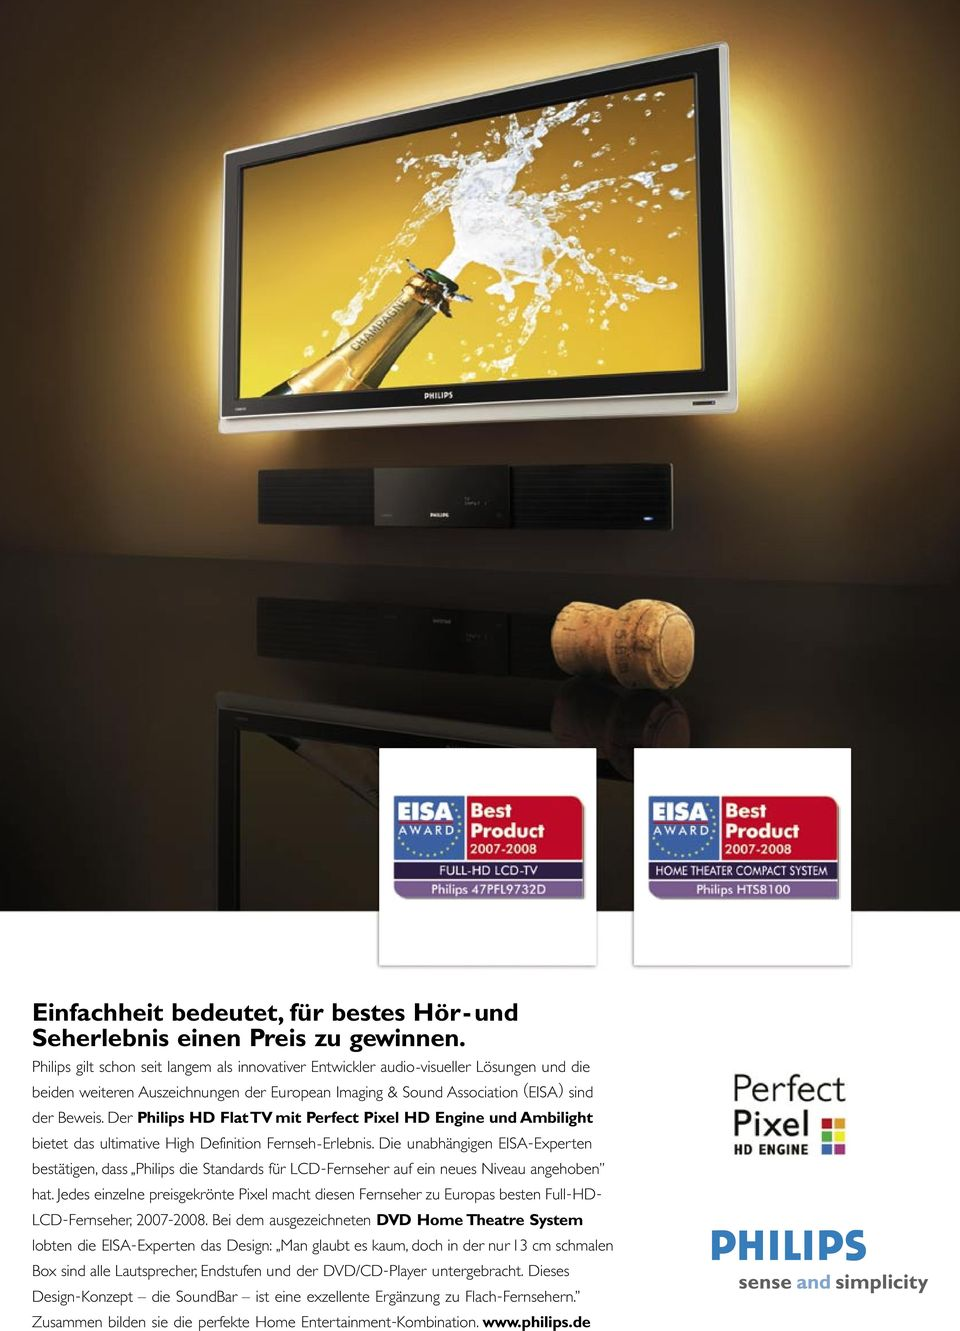 Der Philips HD FlatTV mit Perfect Pixel HD Engine und Ambilight bietet das ultimative High Definition Fernseh-Erlebnis.